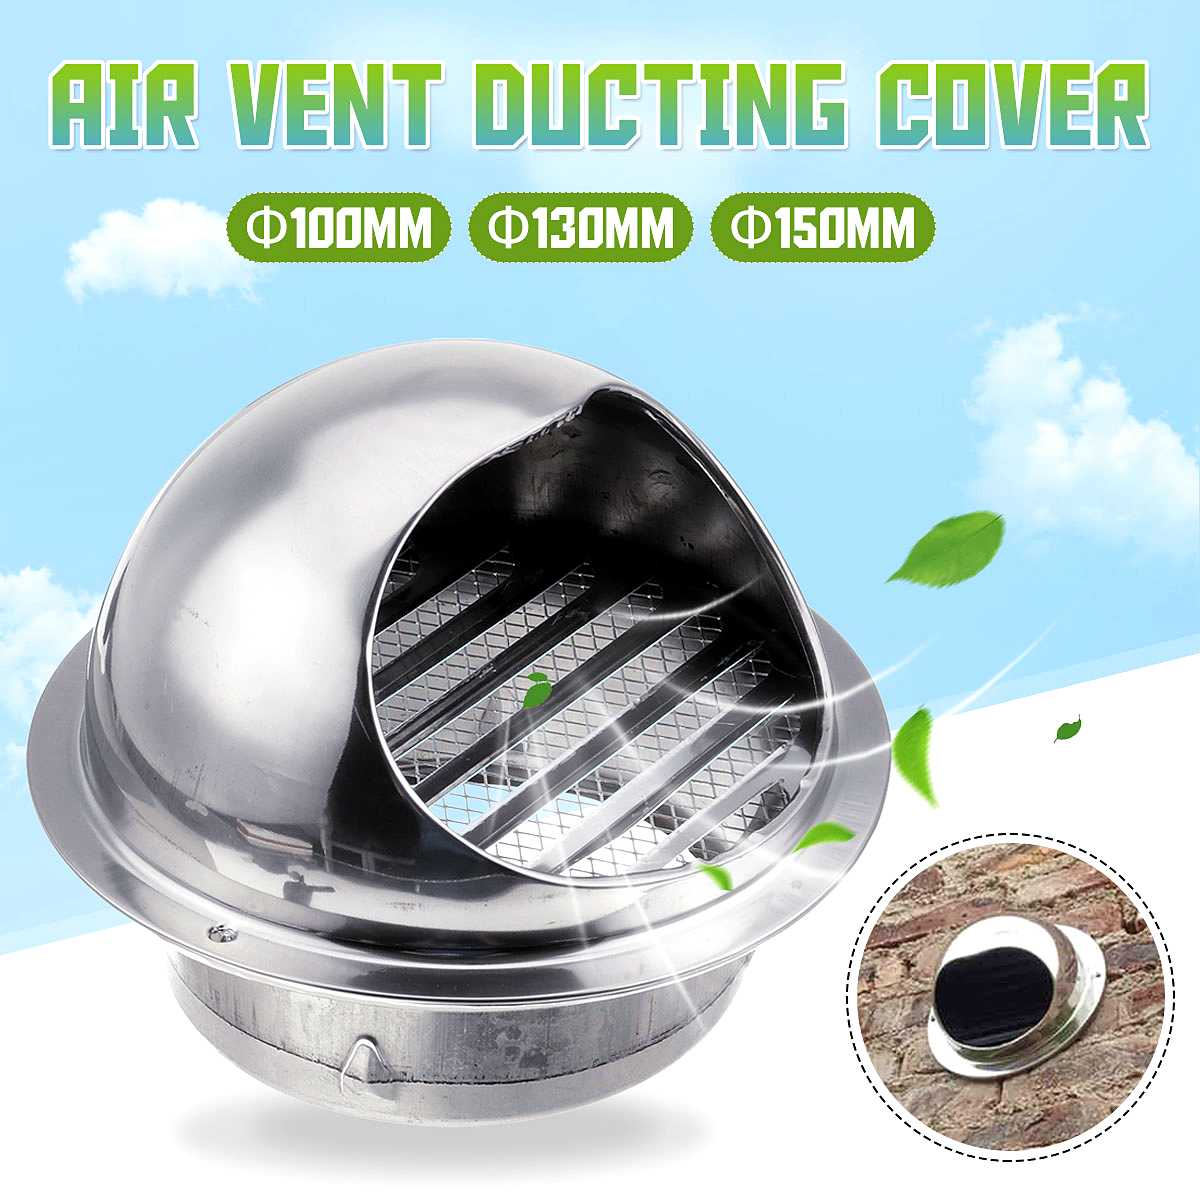 304 Stainless Steel <font><b>100mm</b></font>/130mm/150mm <font><b>Duct</b></font> Cover Round Ventilation System <font><b>Fan</b></font> Exhaust Wall Air Vent Rainproof <font><b>Duct</b></font> Cover Newest image